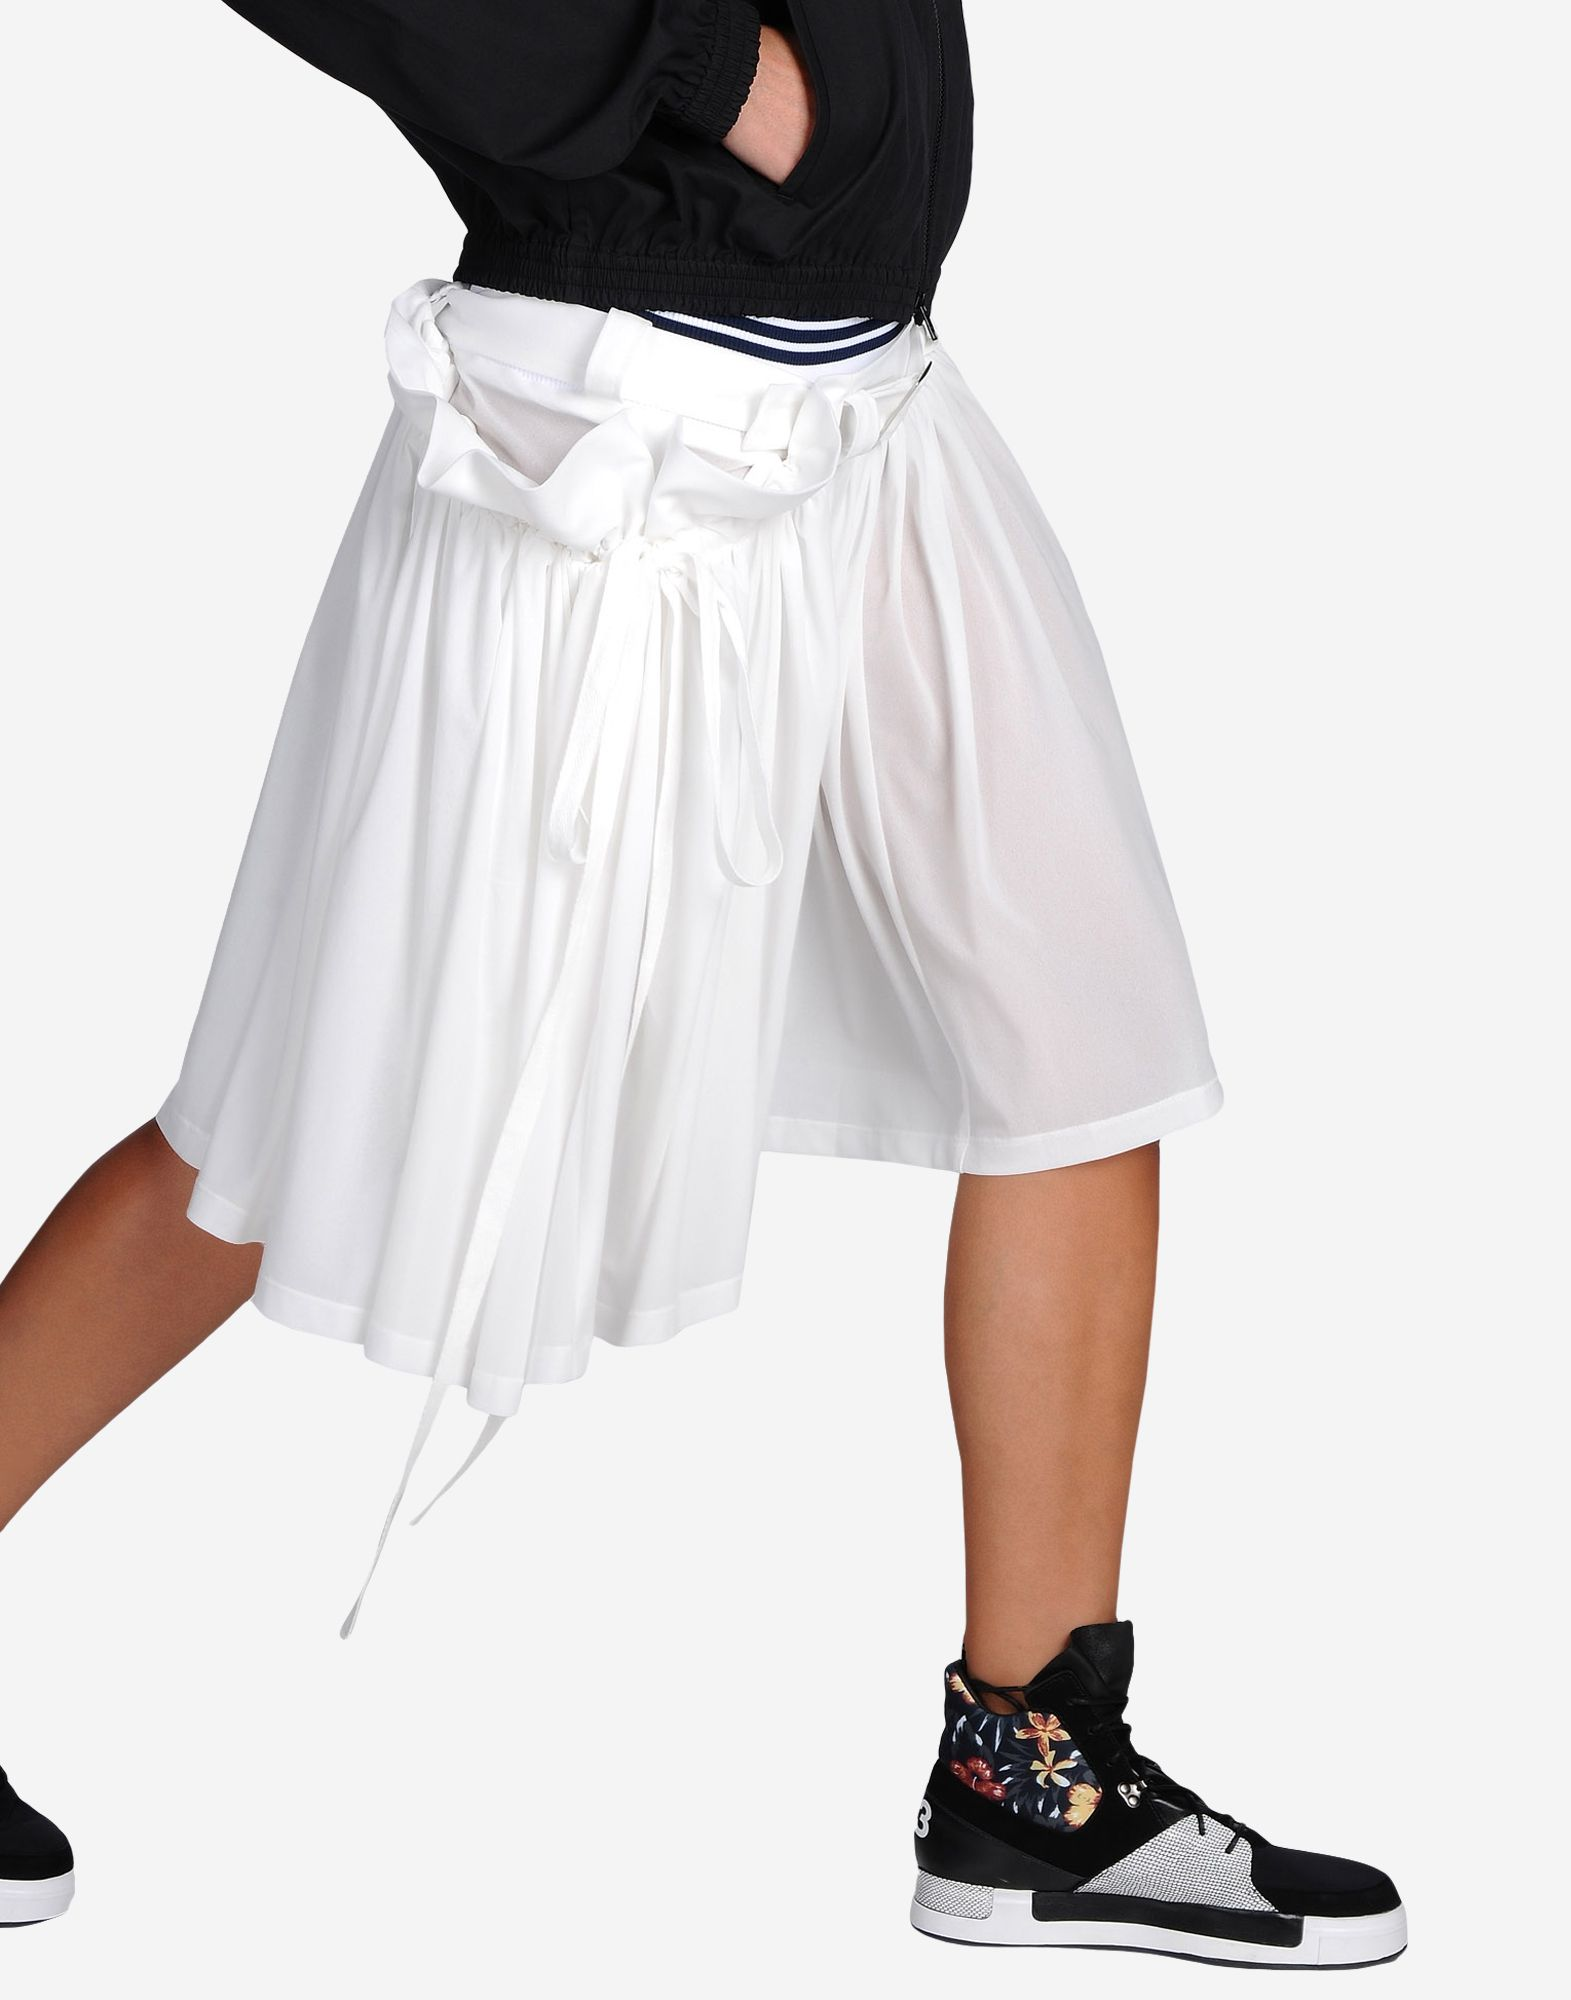 Y 3 Summer Track Skirt Knee Length Skirts for Women | Adidas Y-3 ...